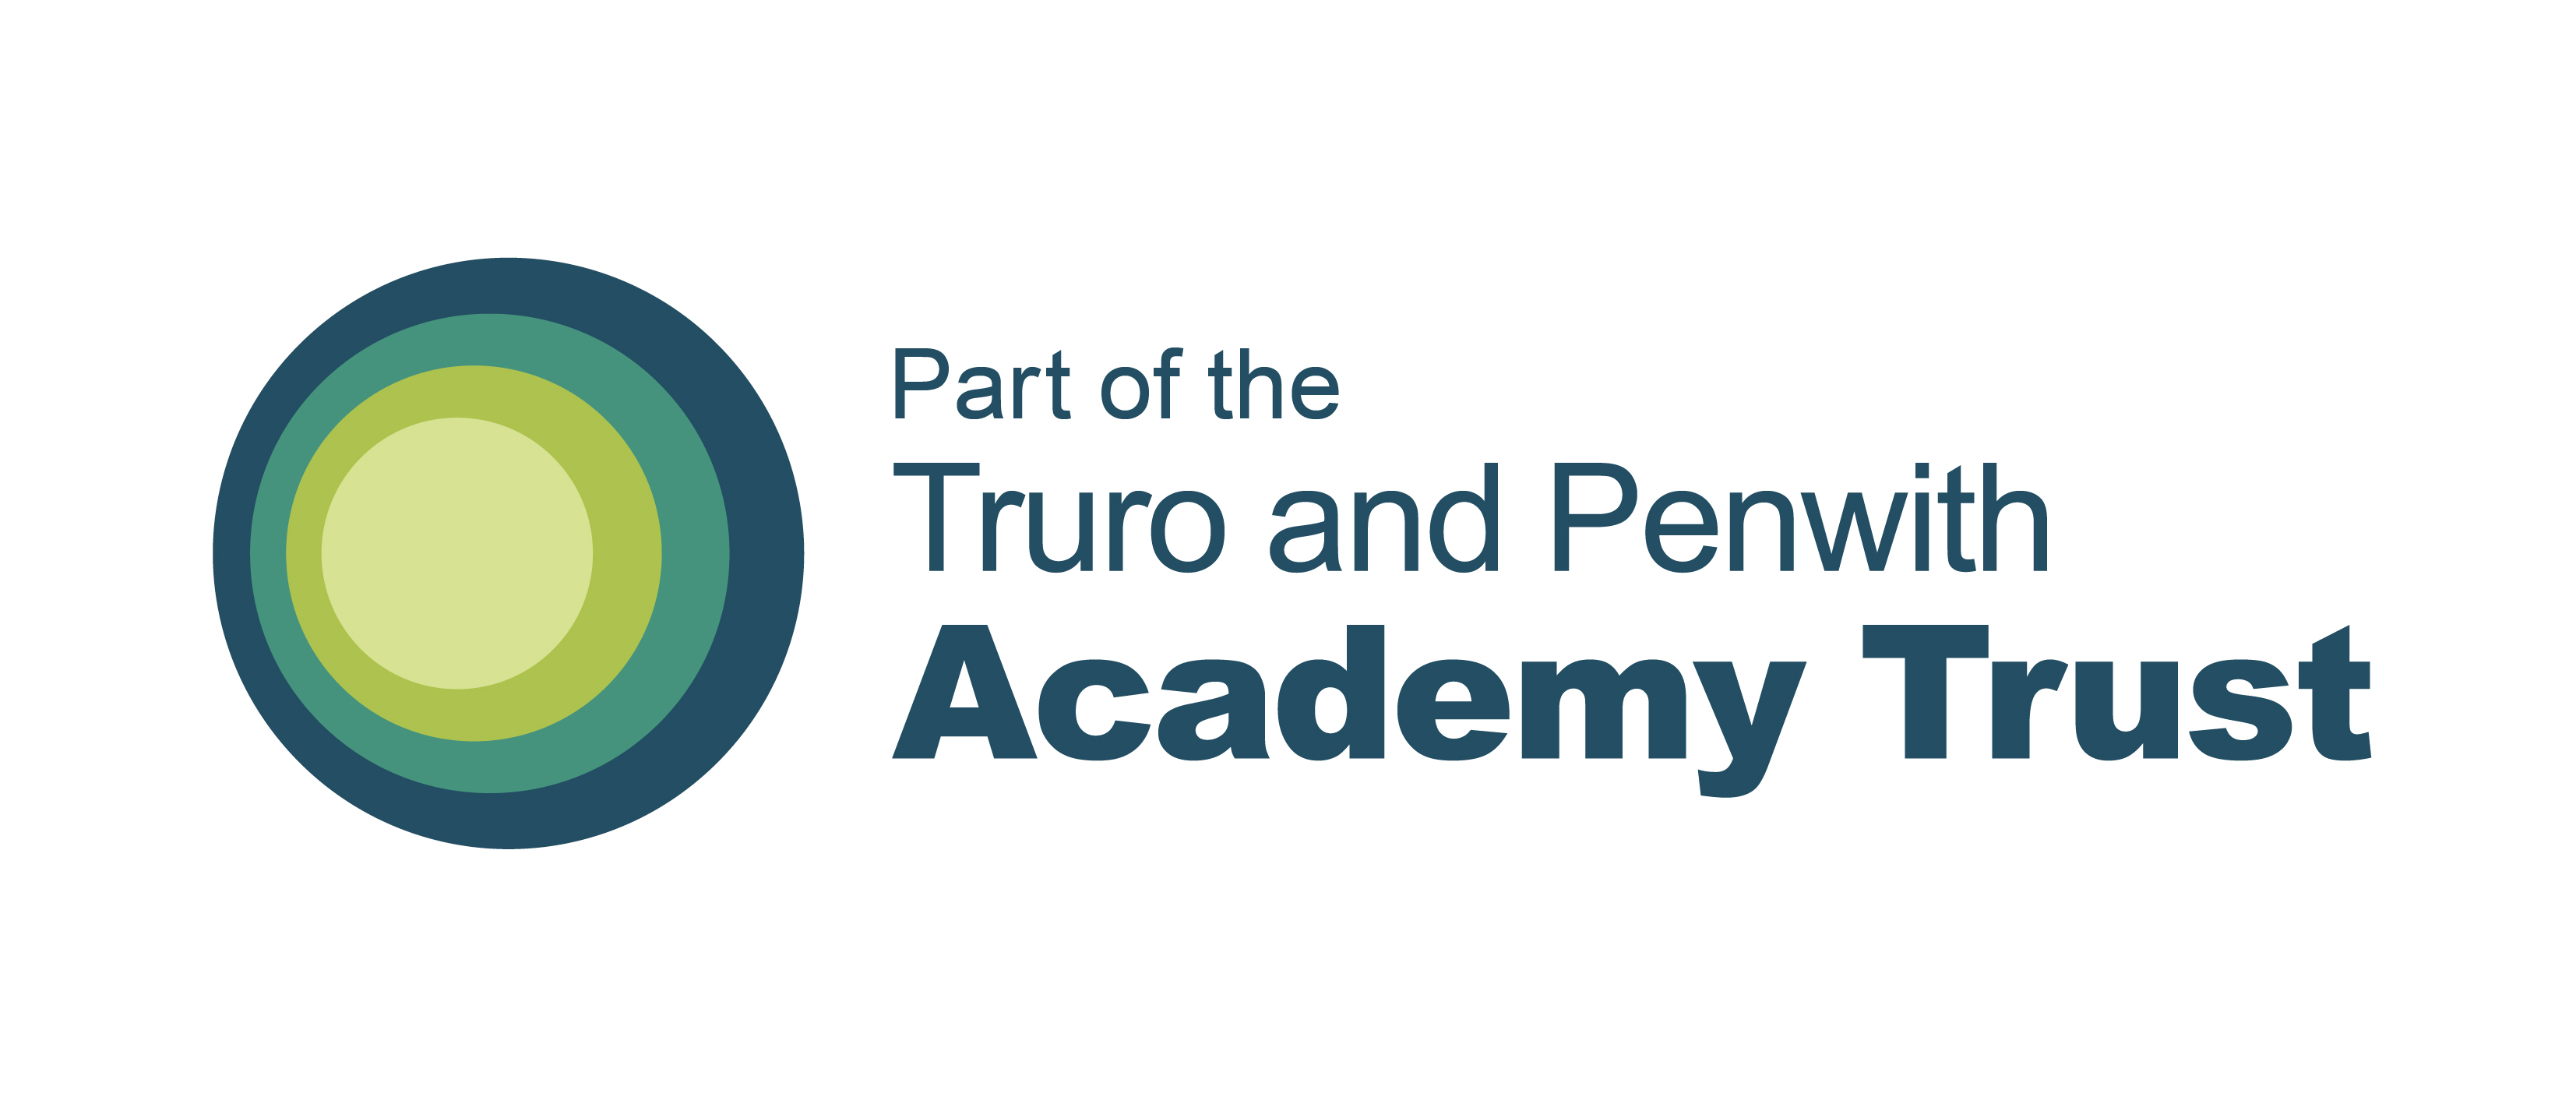 TPAT logo, Part of the Truro and Penwith Academy Trust